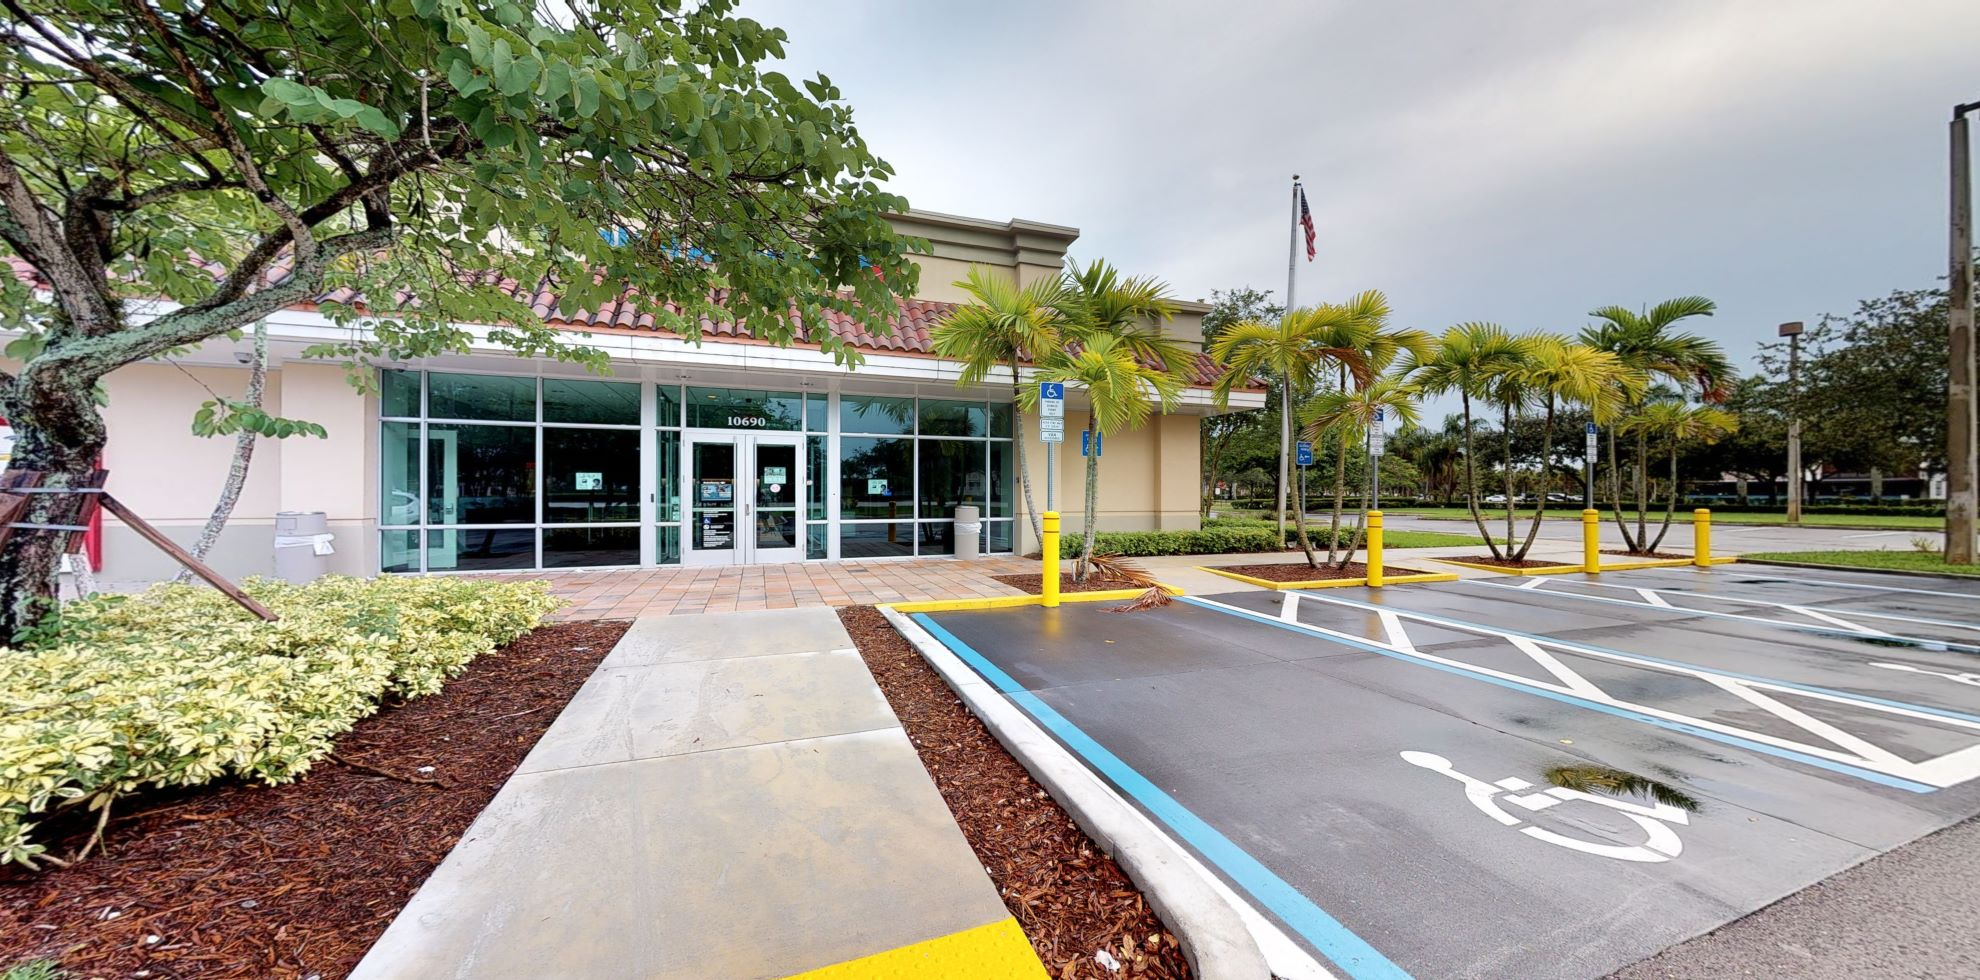 Bank of America financial center with walk-up ATM | 10690 Forest Hill Blvd, Wellington, FL 33414